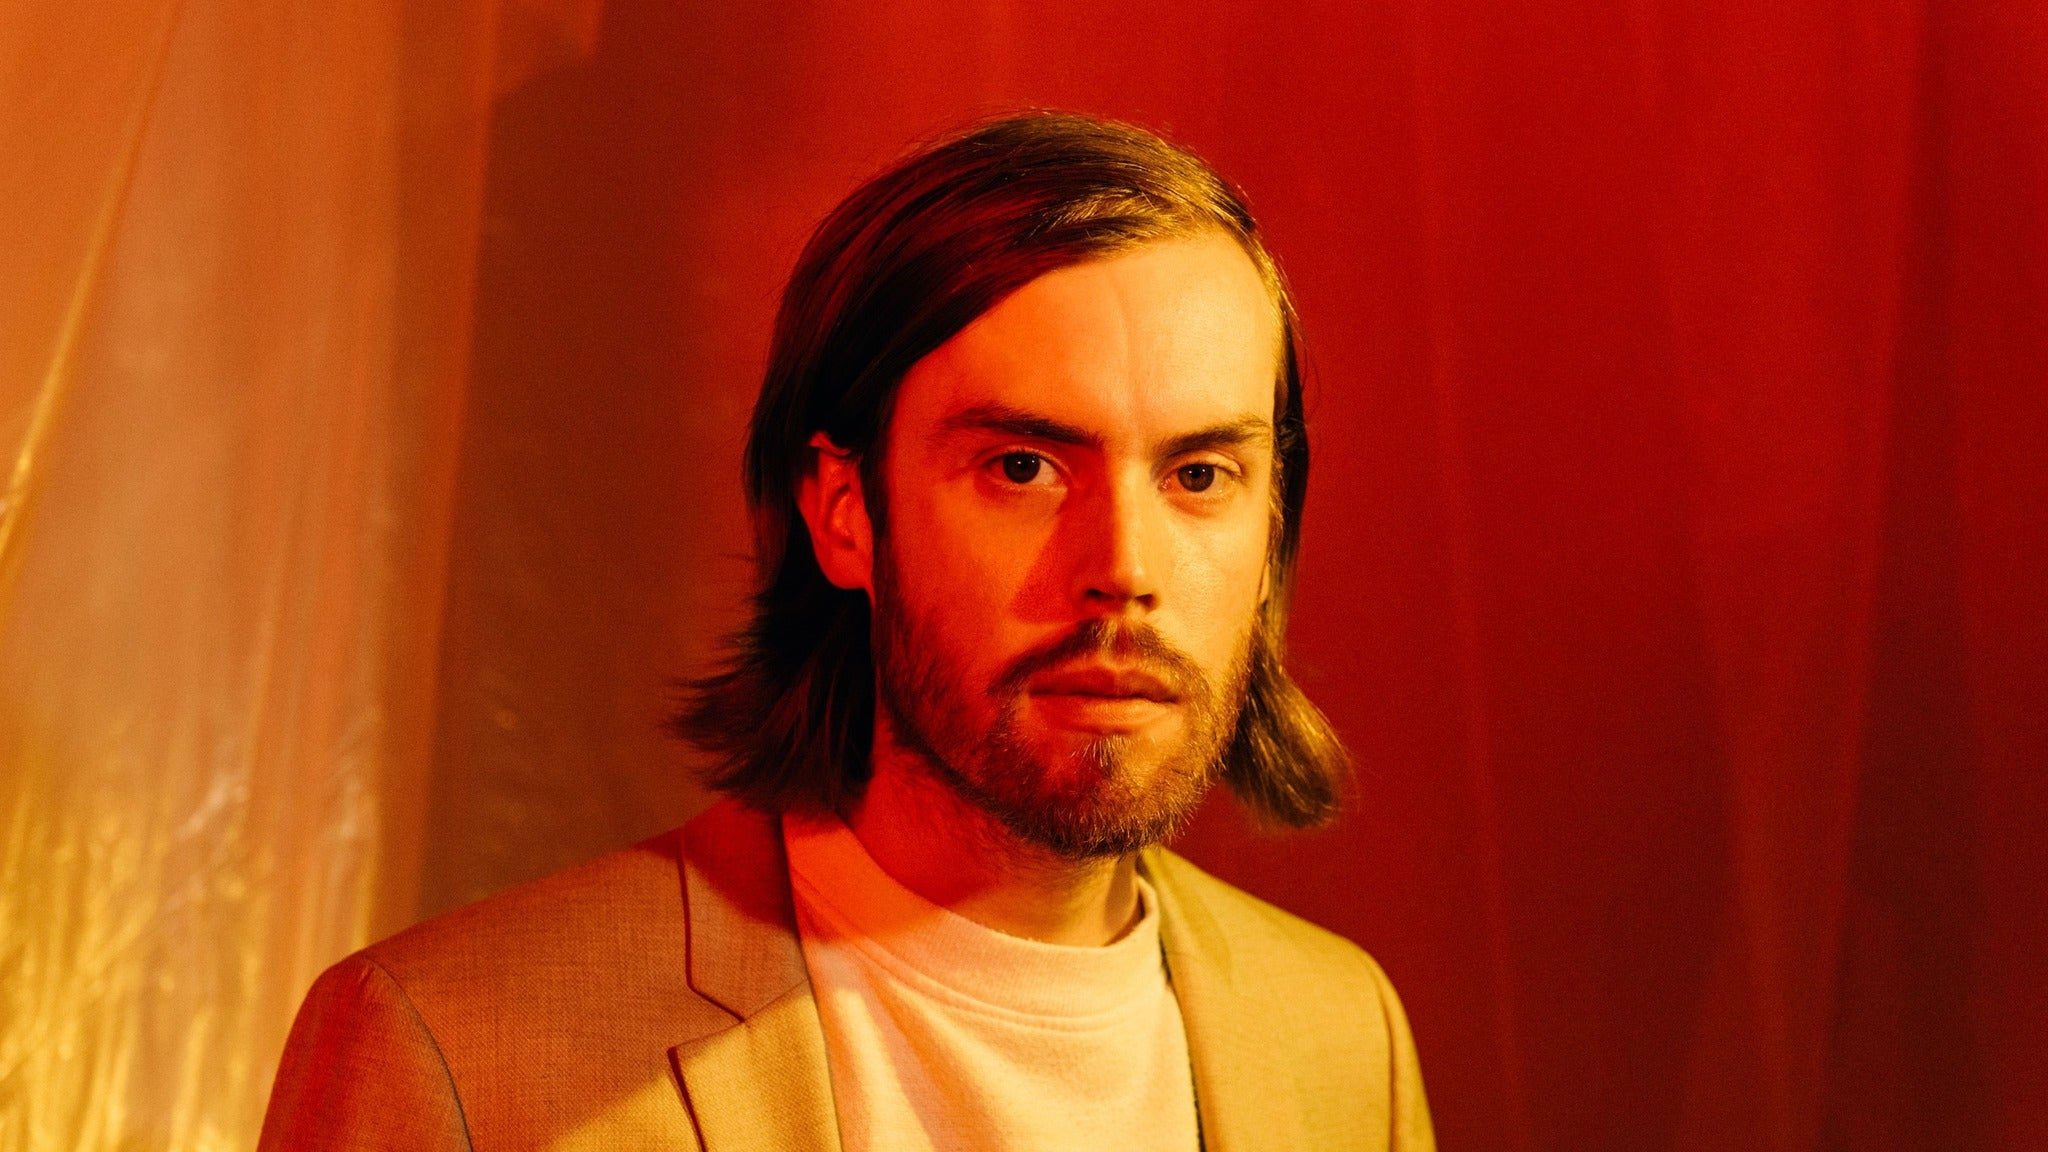 Wild Nothing at The Crescent Ballroom